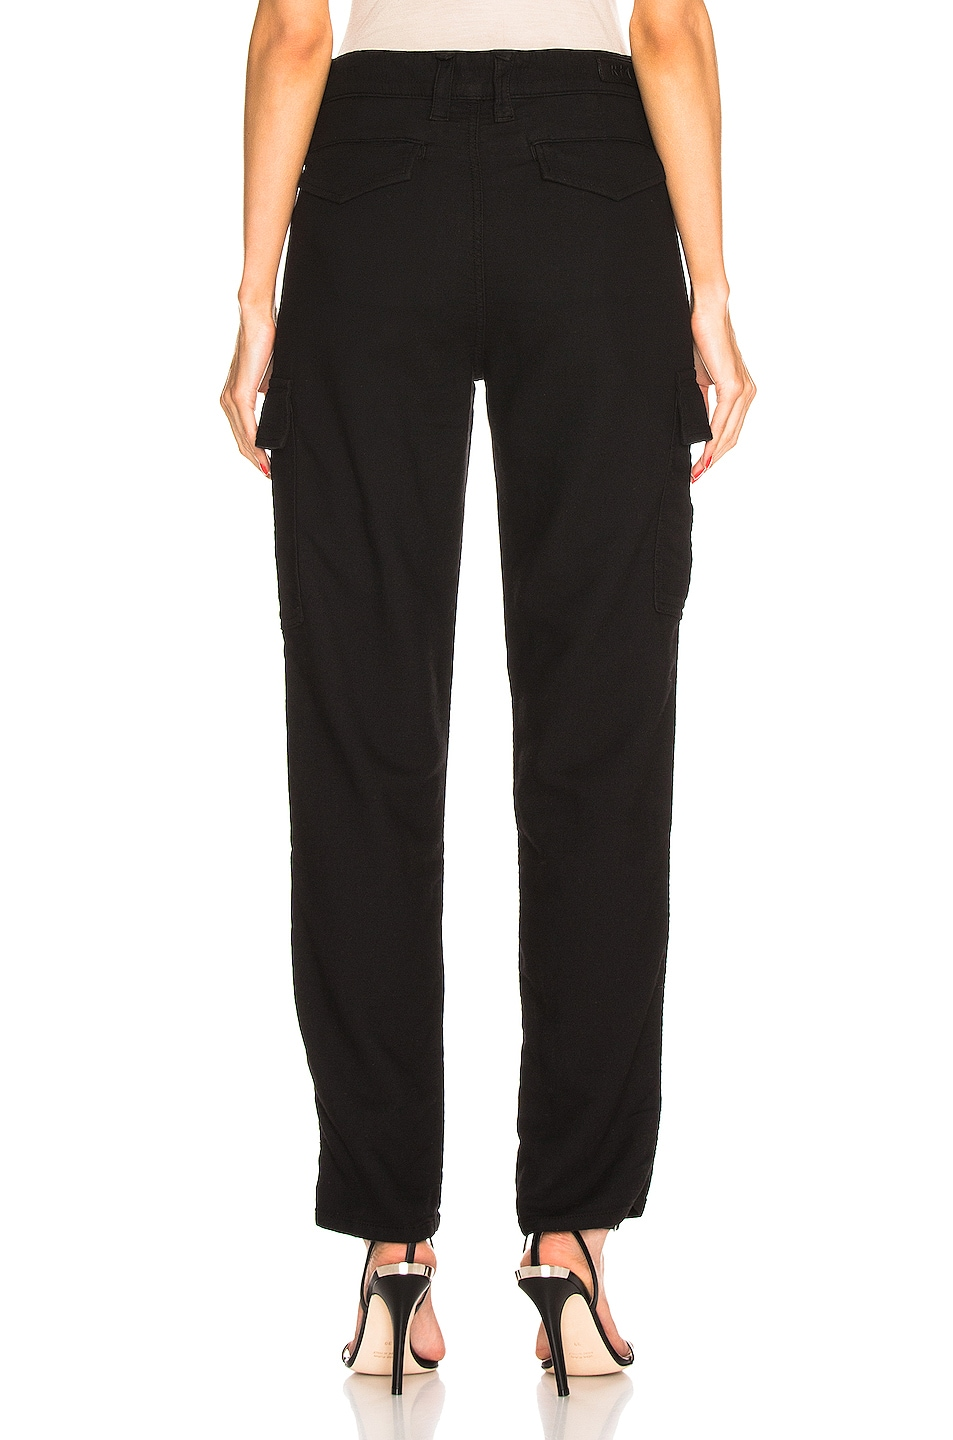 Image 3 of RtA Sallinger Pant in Jet Black 3